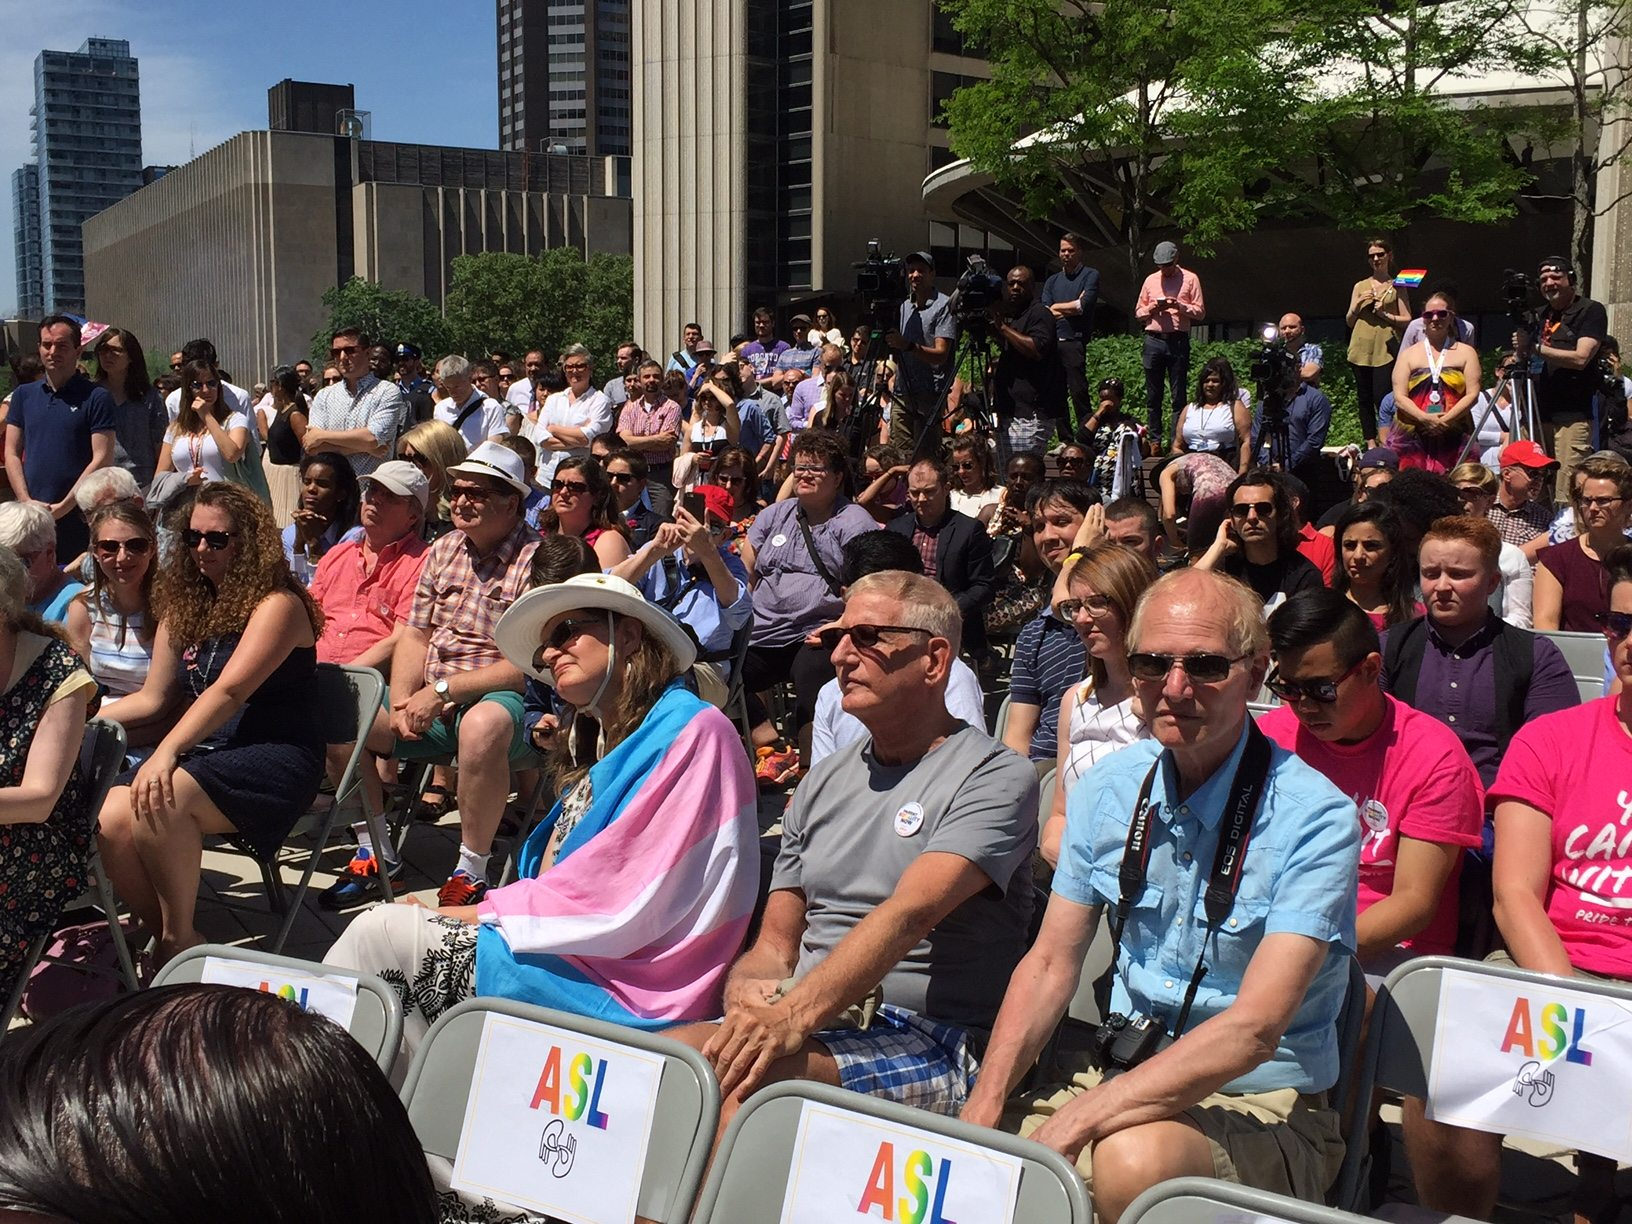 A full crowd gathered in the sweltering heat of the City Hall rooftop to celebrate.